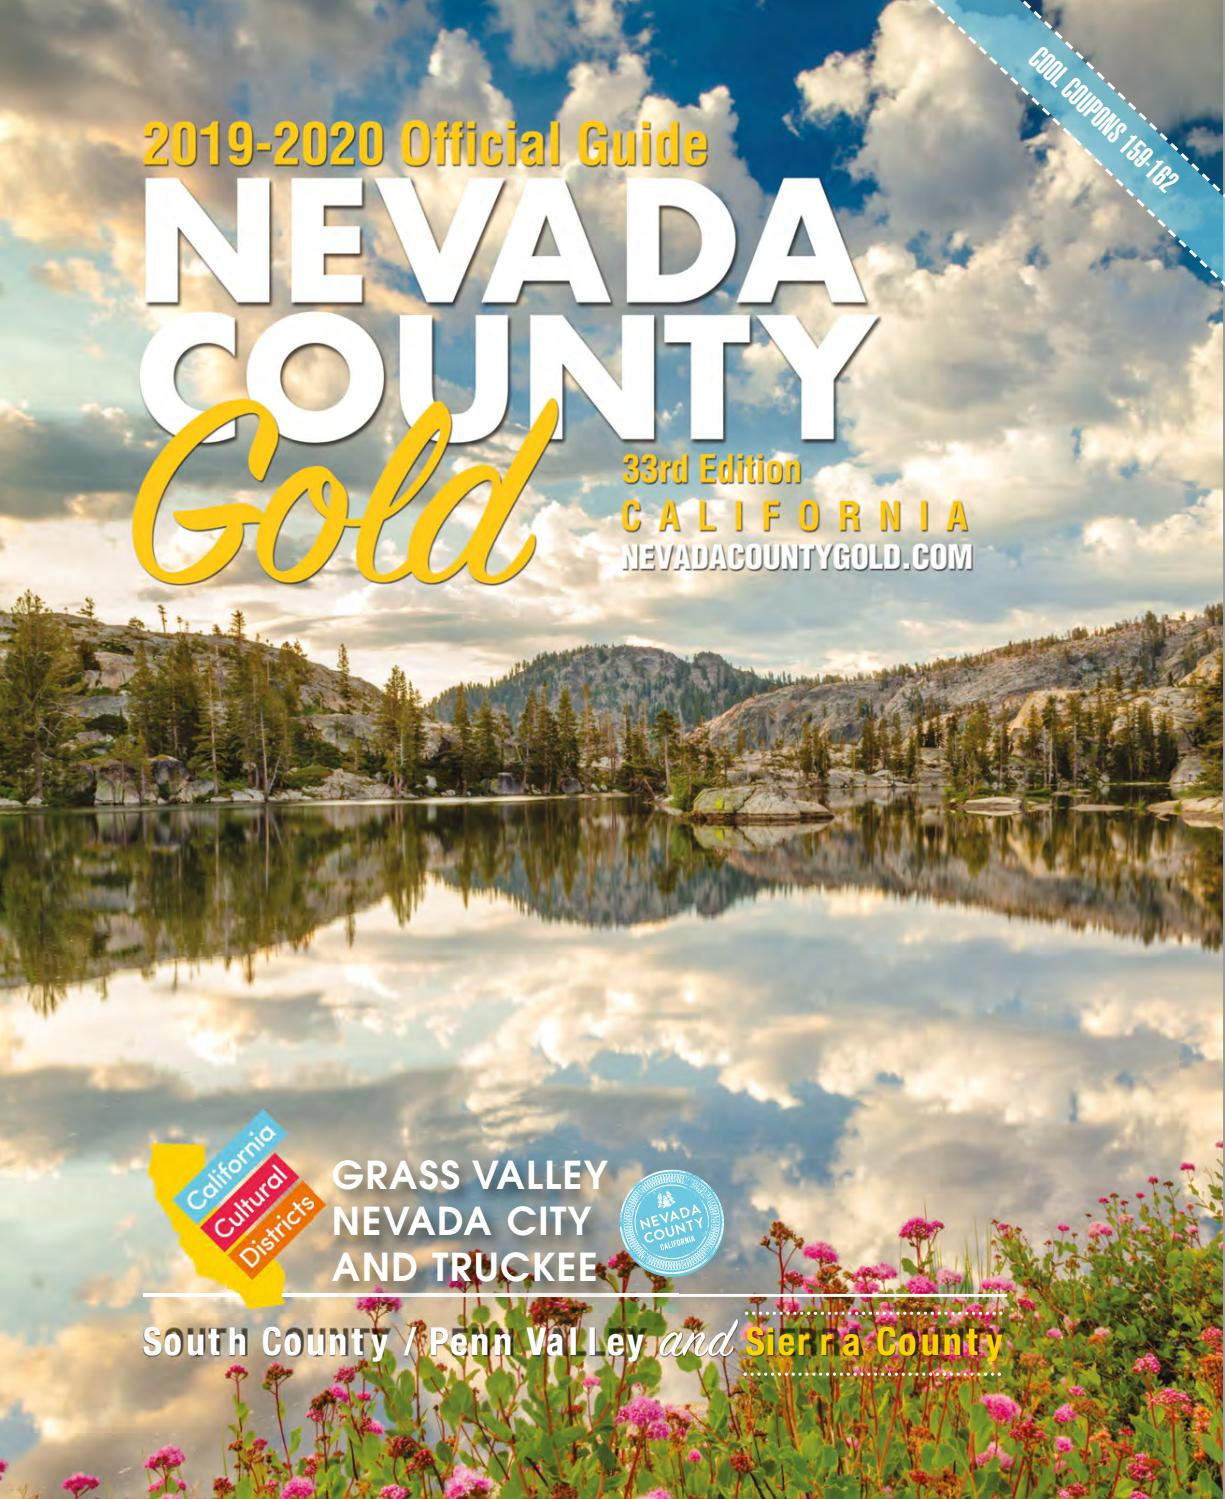 Chaton A Donner Strasbourg Unique 2019 2020 Nevada County Gold Magazine by Symang issuu